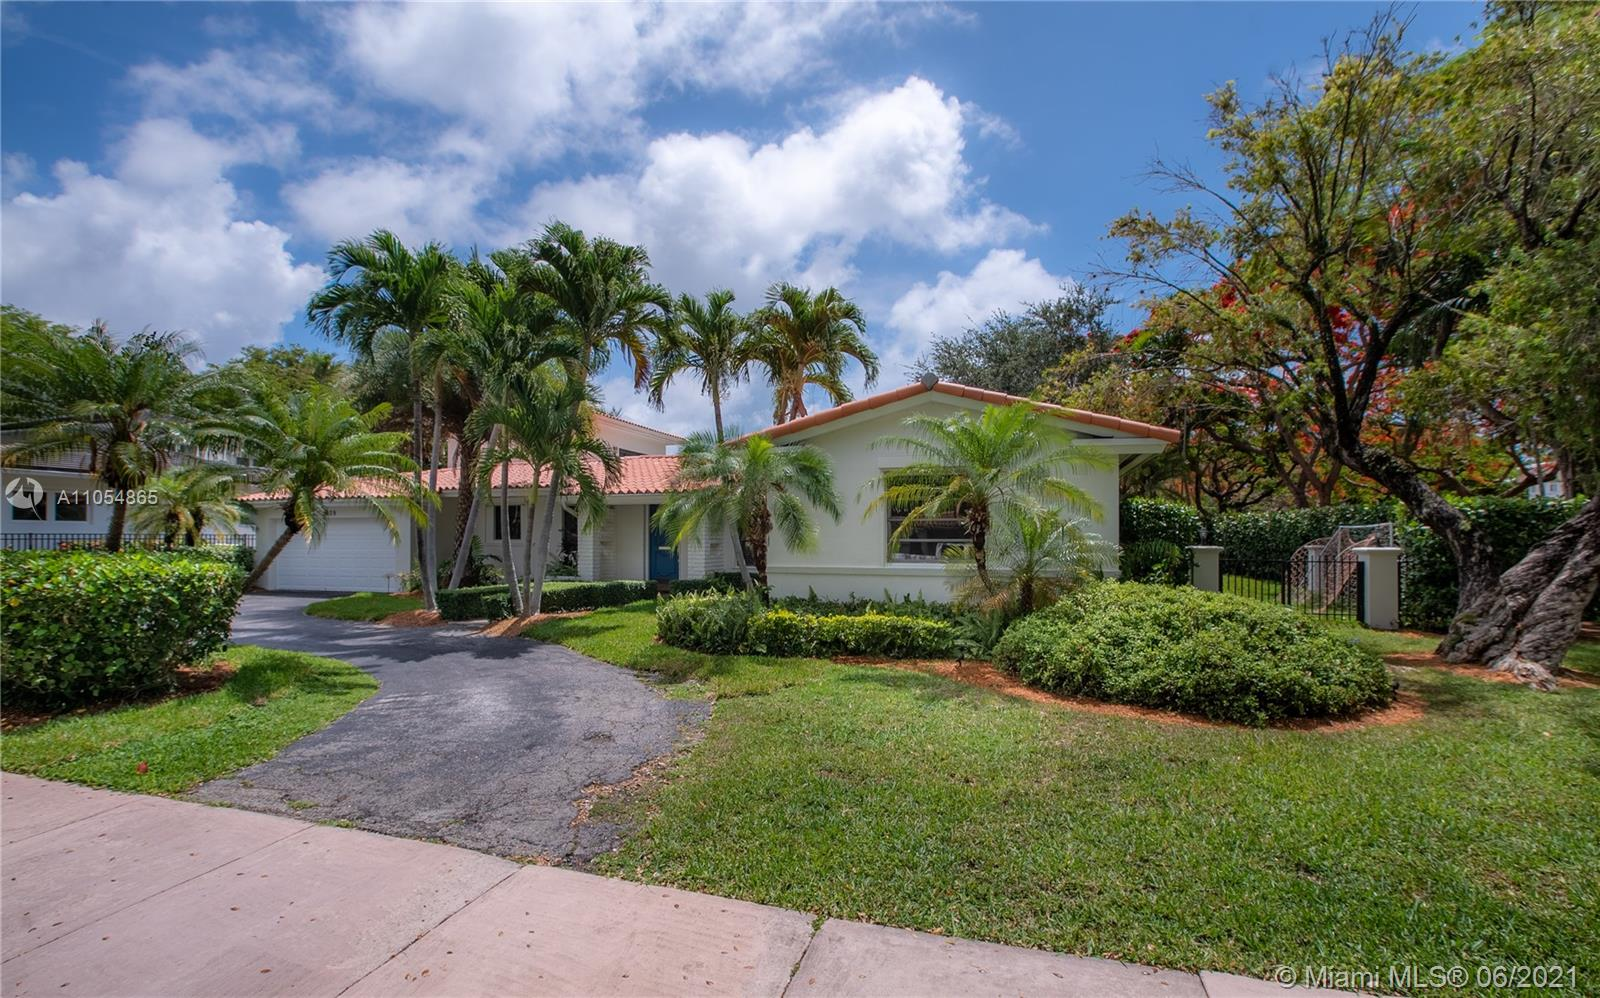 Great opportunity to own a wonderful, light-filled 4 bedrooms 3 bath family home (2837 SQFT living area per appraisal measurement) on a quiet tree-lined street in one of the most desirable Coral Gables neighborhoods. This home features a split bedroom plan with an upstairs master suite. Enjoy the sparkling pool/spa. The outdoor patio has a built-in grill and cooler that is perfect for entertaining. The home is a hop, skip, and a jump from Coconut Grove, downtown Coral Gables, and downtown South Miami. Property is well situated for easy access to Miami Beach, Key Biscayne, Brickell, Design District, and Airport. A+ schools and in X zone area determined to be outside the 1% and 0.2% chance floodplains. This corner lot home will not last! Please contact the listing agent for showings.